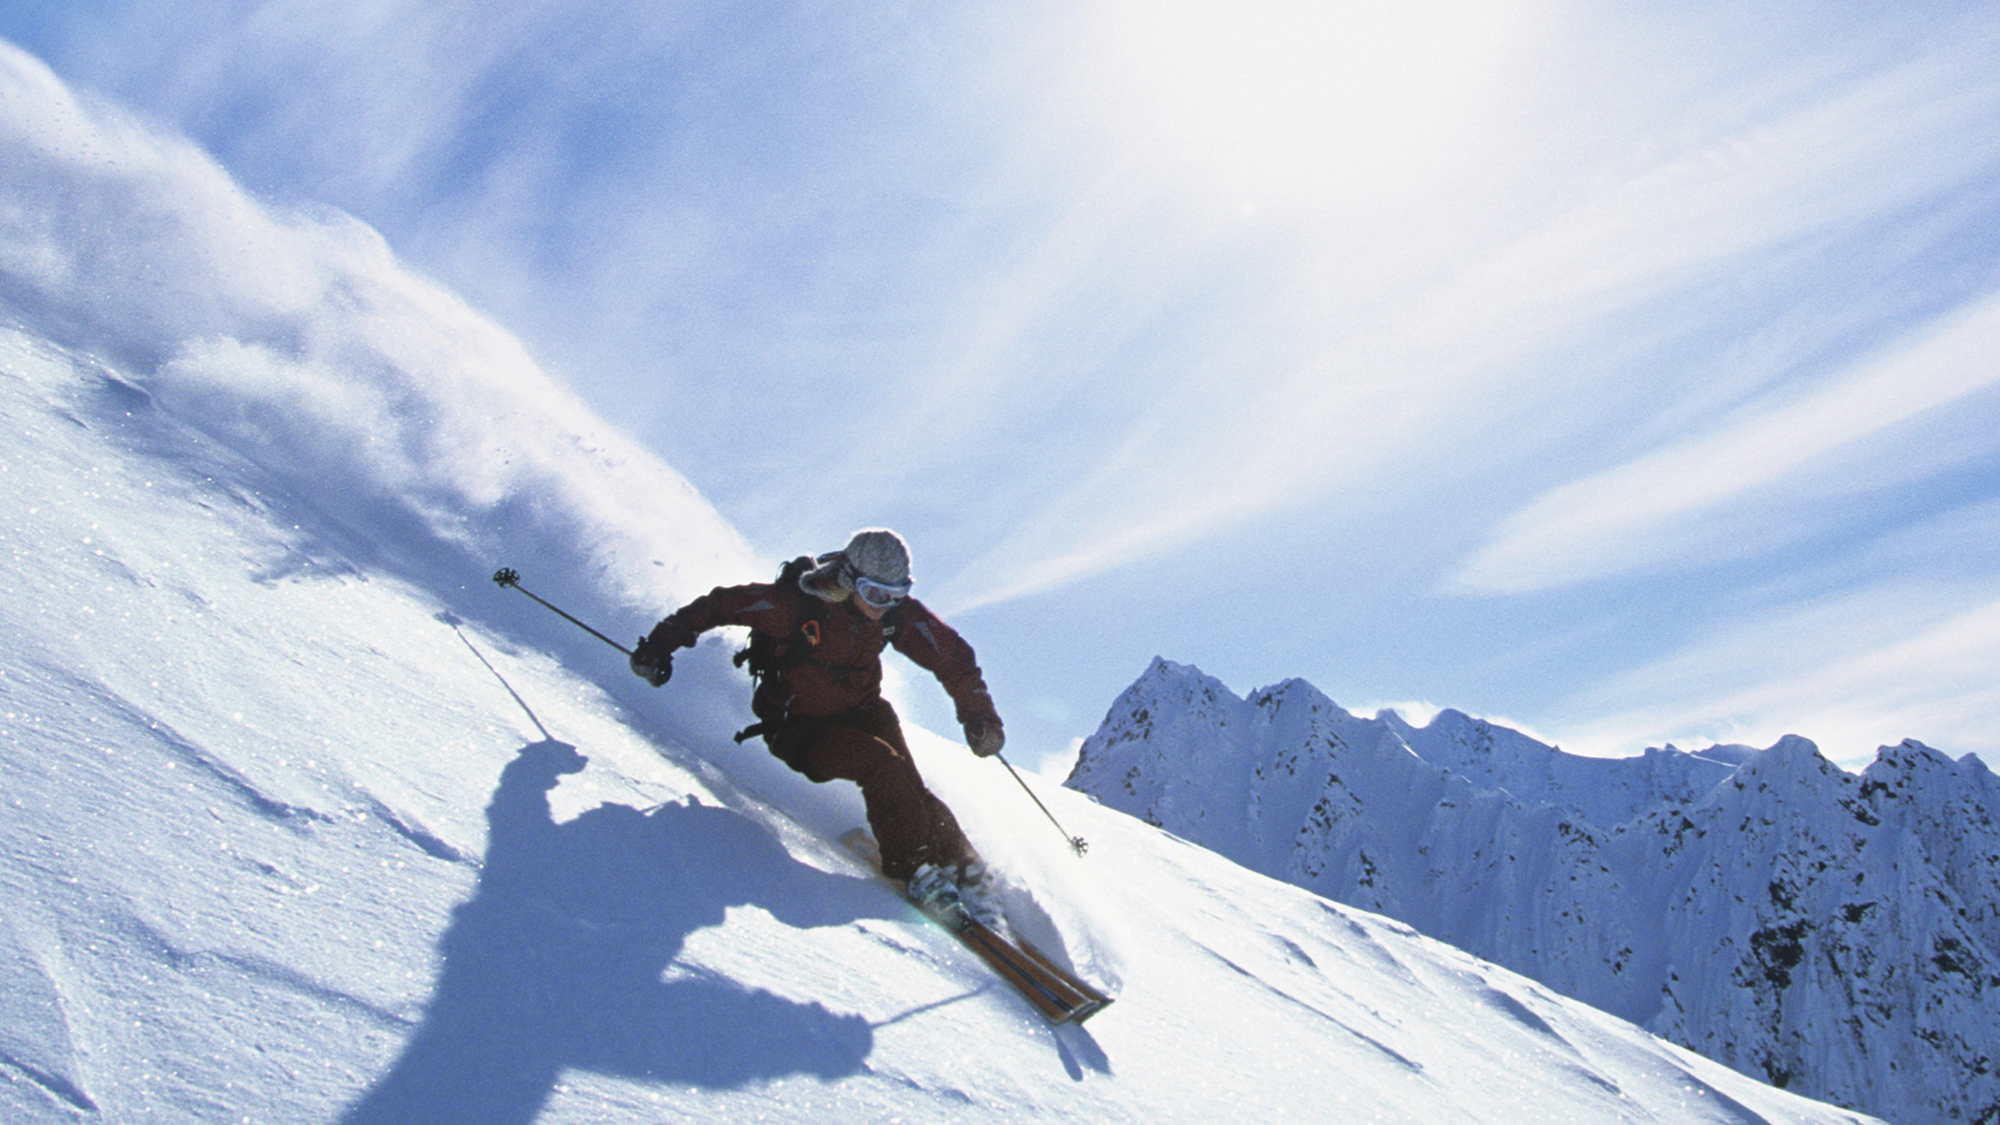 Ten - Exercises to prepare for skiing